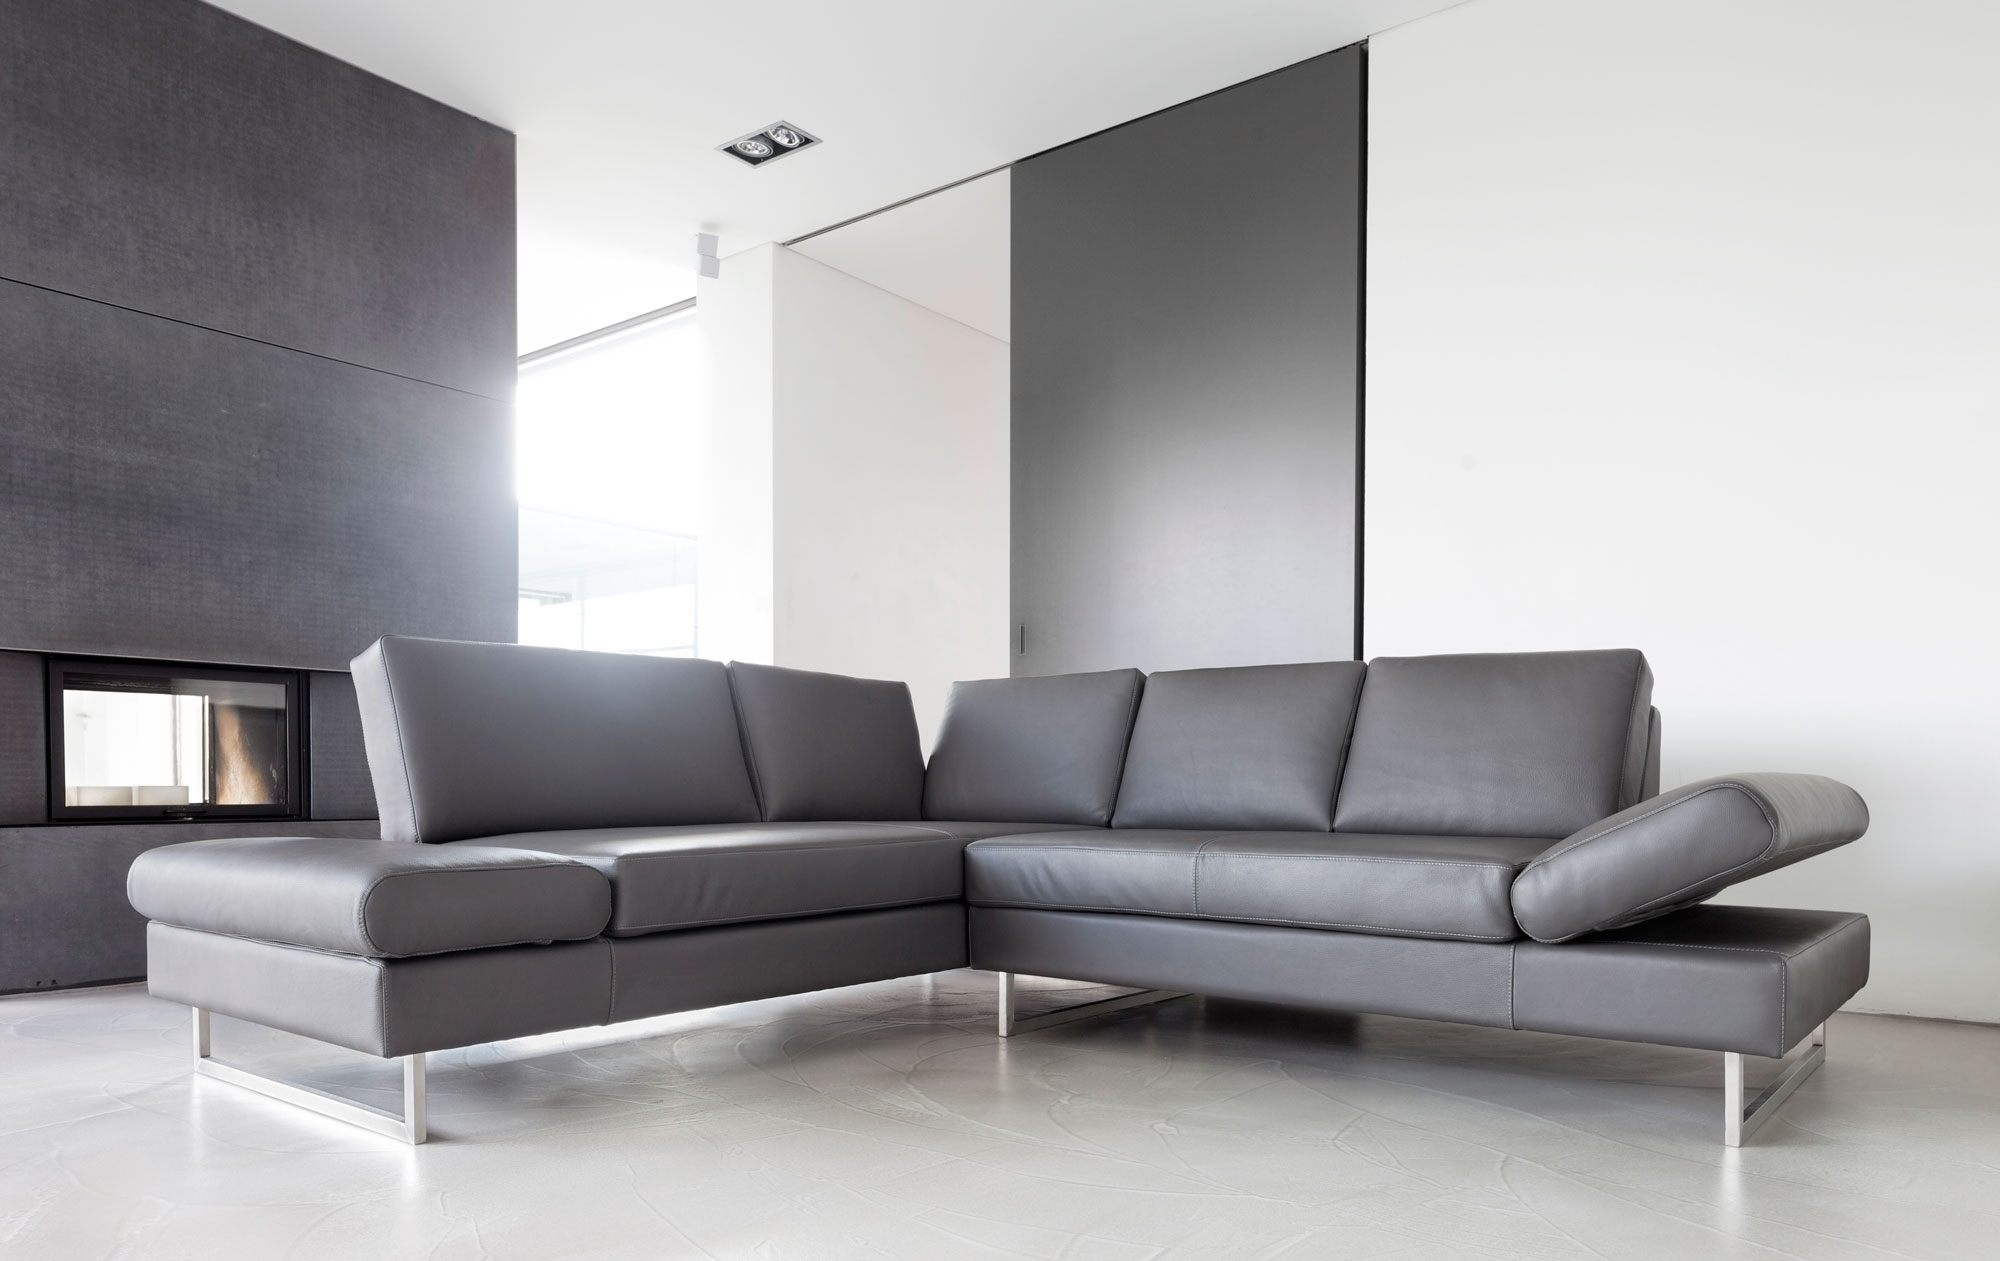 Sofa Essen In Leder Sessel Manufakturde